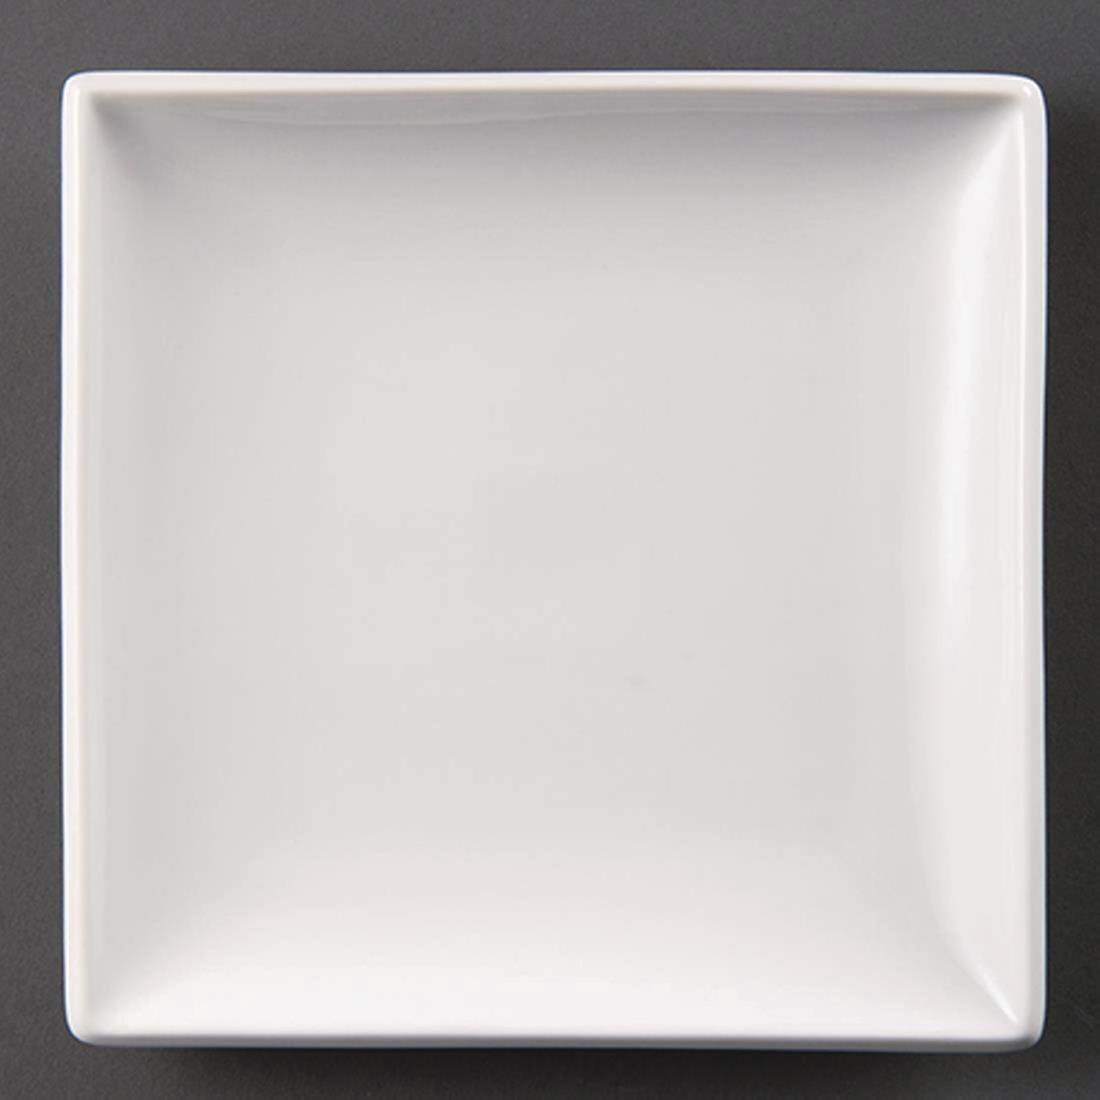 Olympia Whiteware Square Plates 295mm